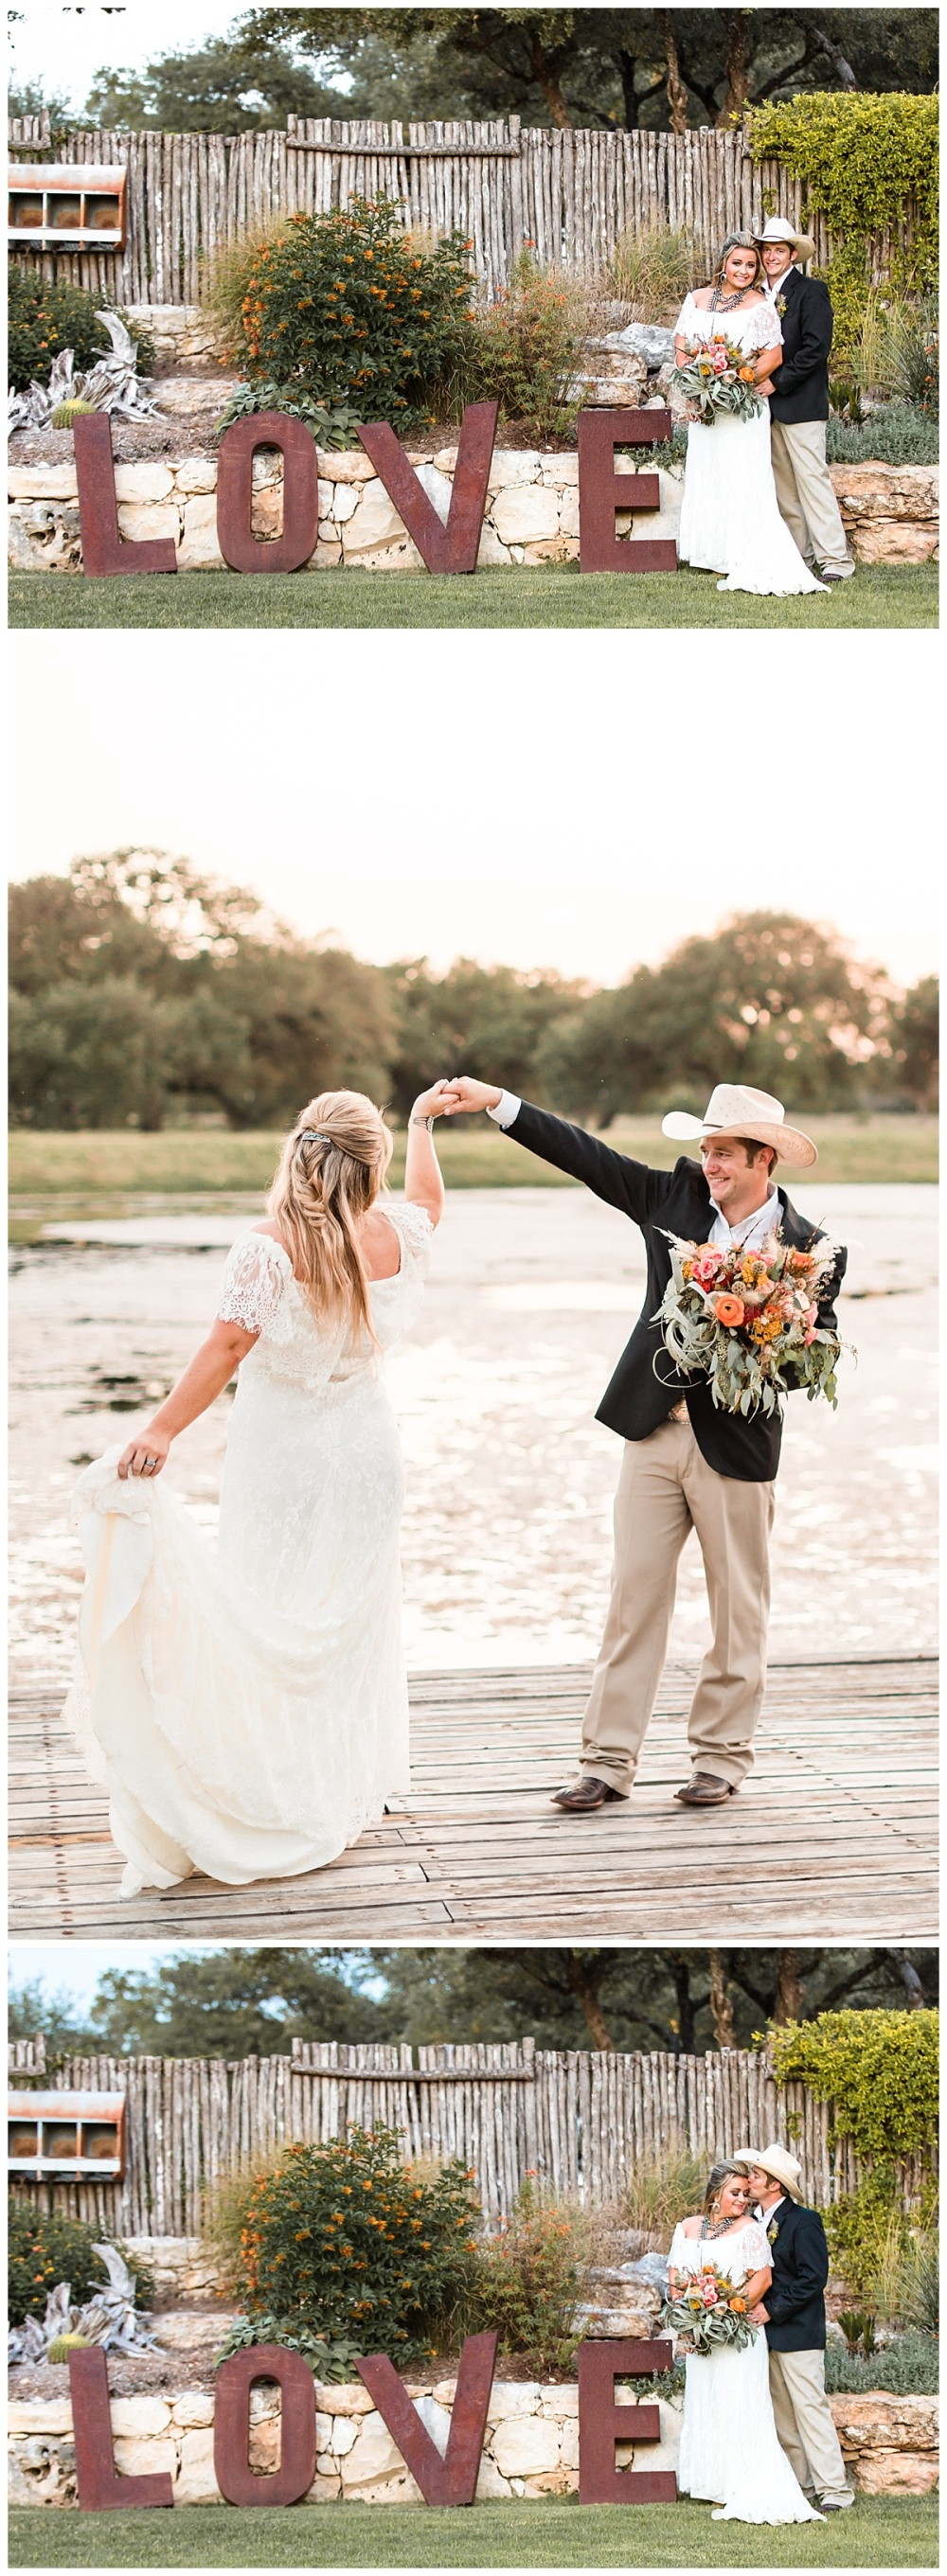 Texas-Wedding-Photographer-Braded-T-Ranch-Kendalia-Bride-Groom-Southwestern-Style-Carly-Barton-Photography-Vogt_0056.jpg